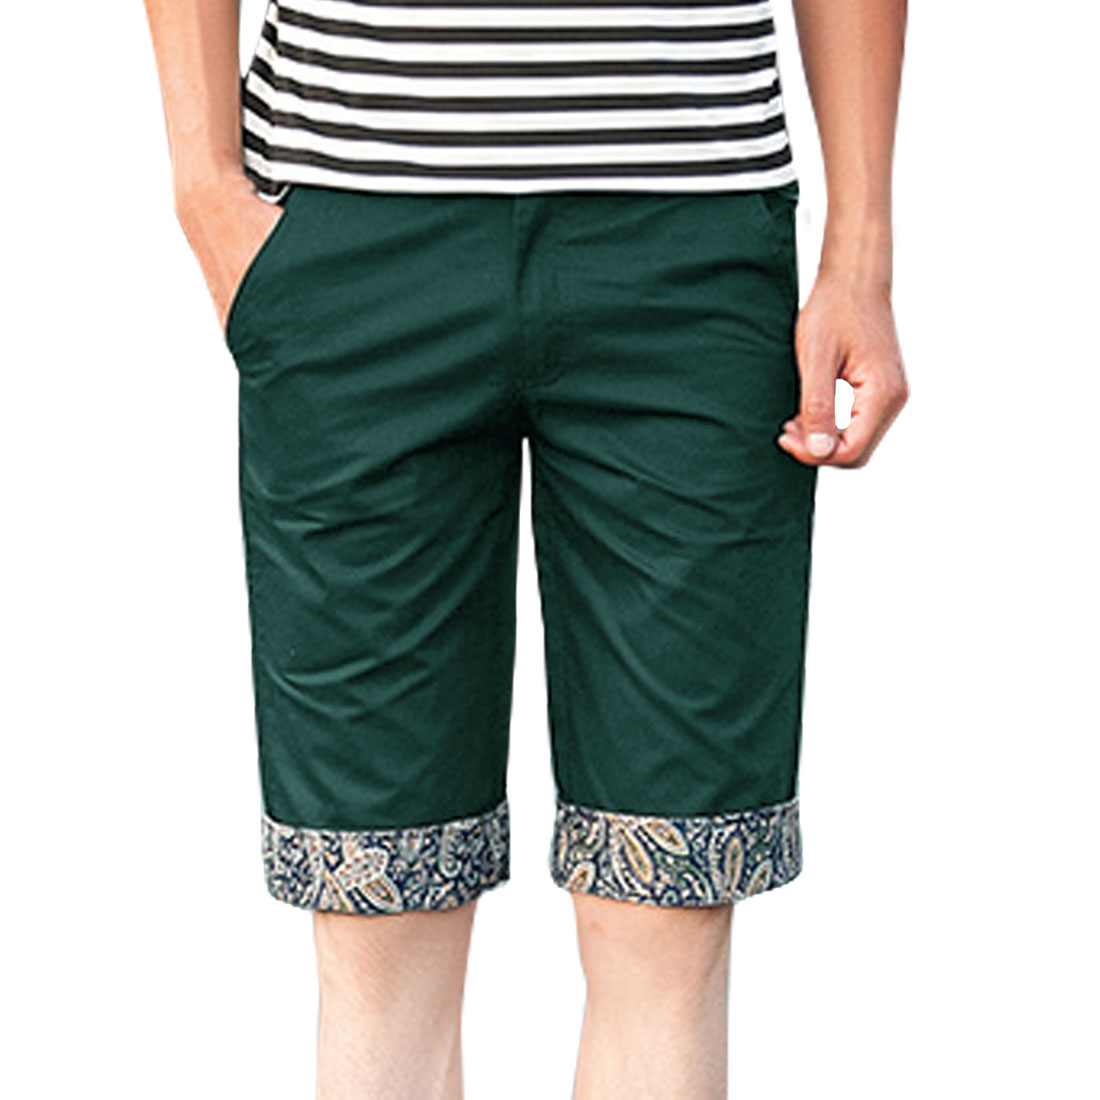 Azzuro Men's Paisleys Pattern Rolled Cuffs Straight Leg Shorts Green (Size M / W32)